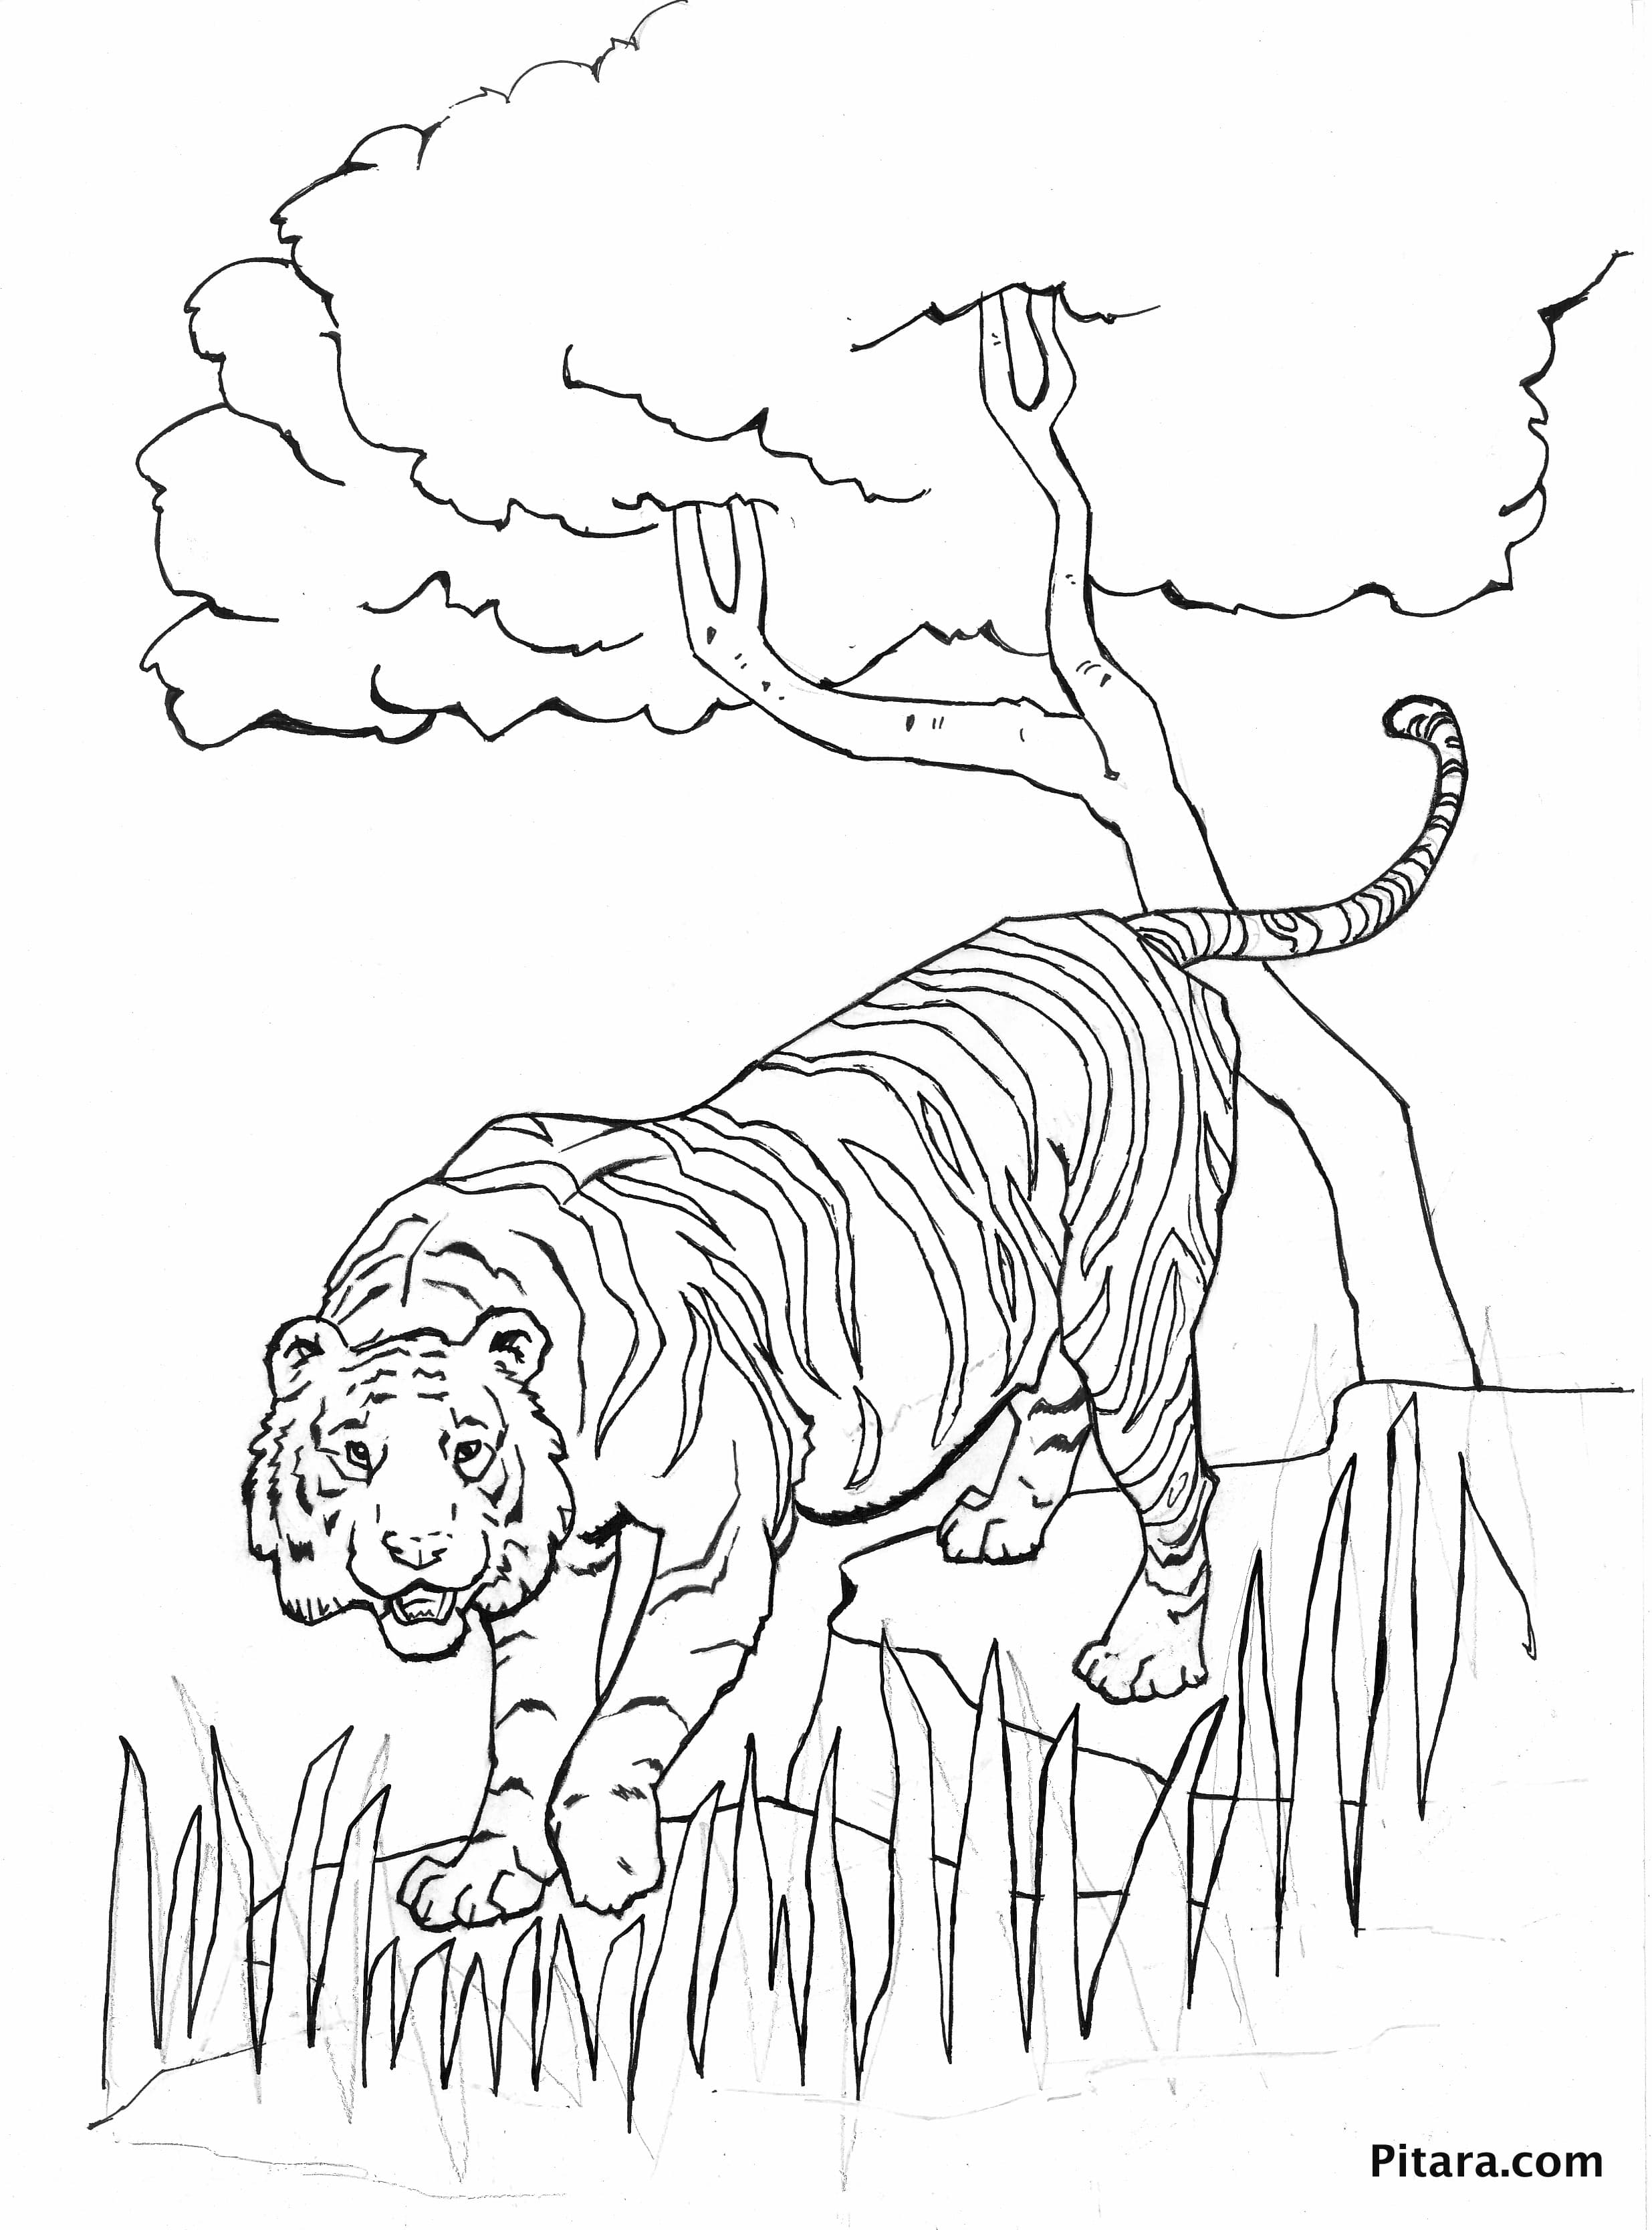 Tiger – Coloring page